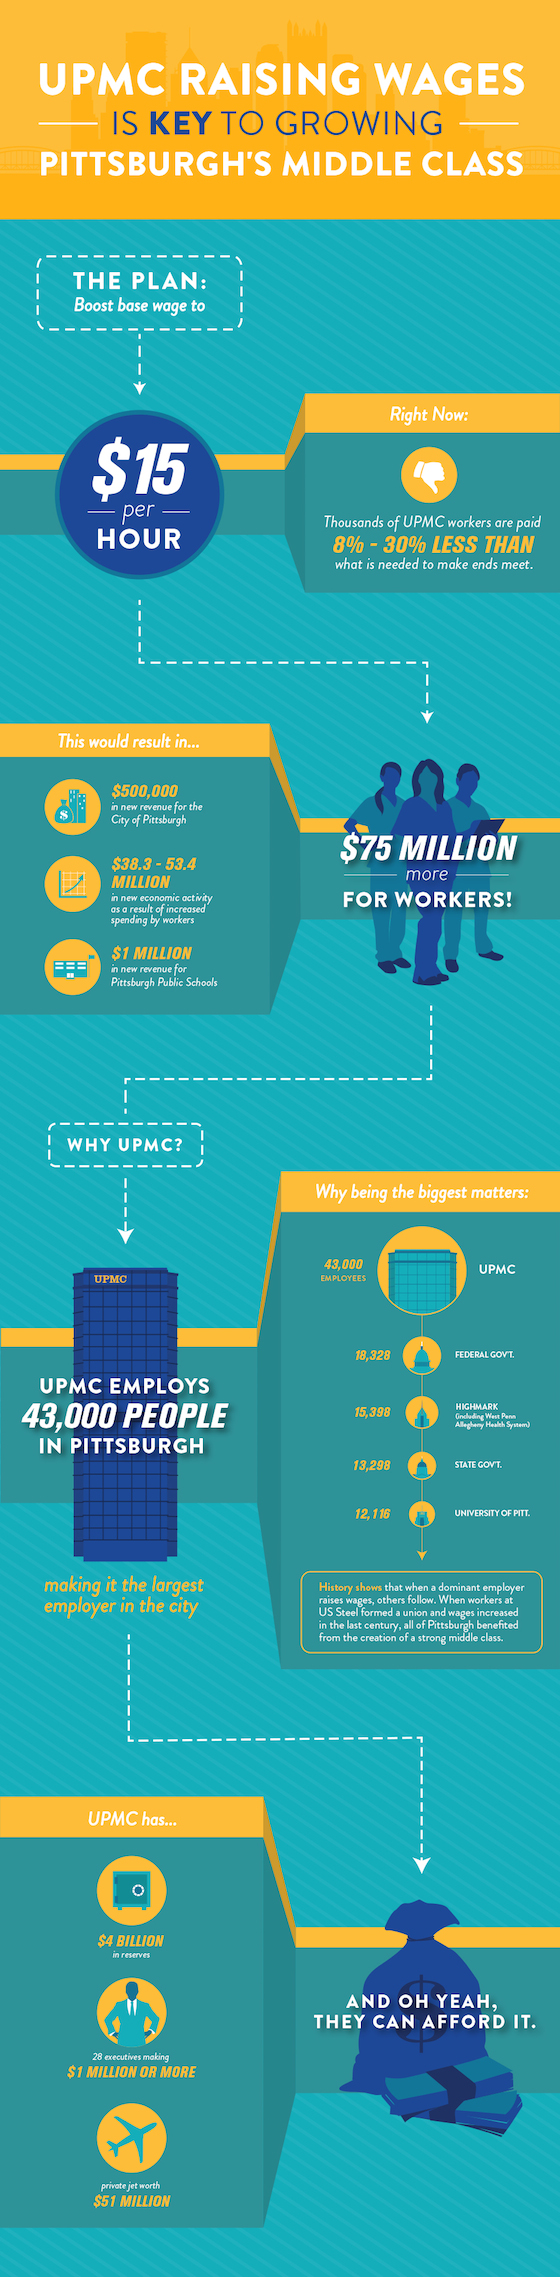 UPMC_economic_infographic_FINAL